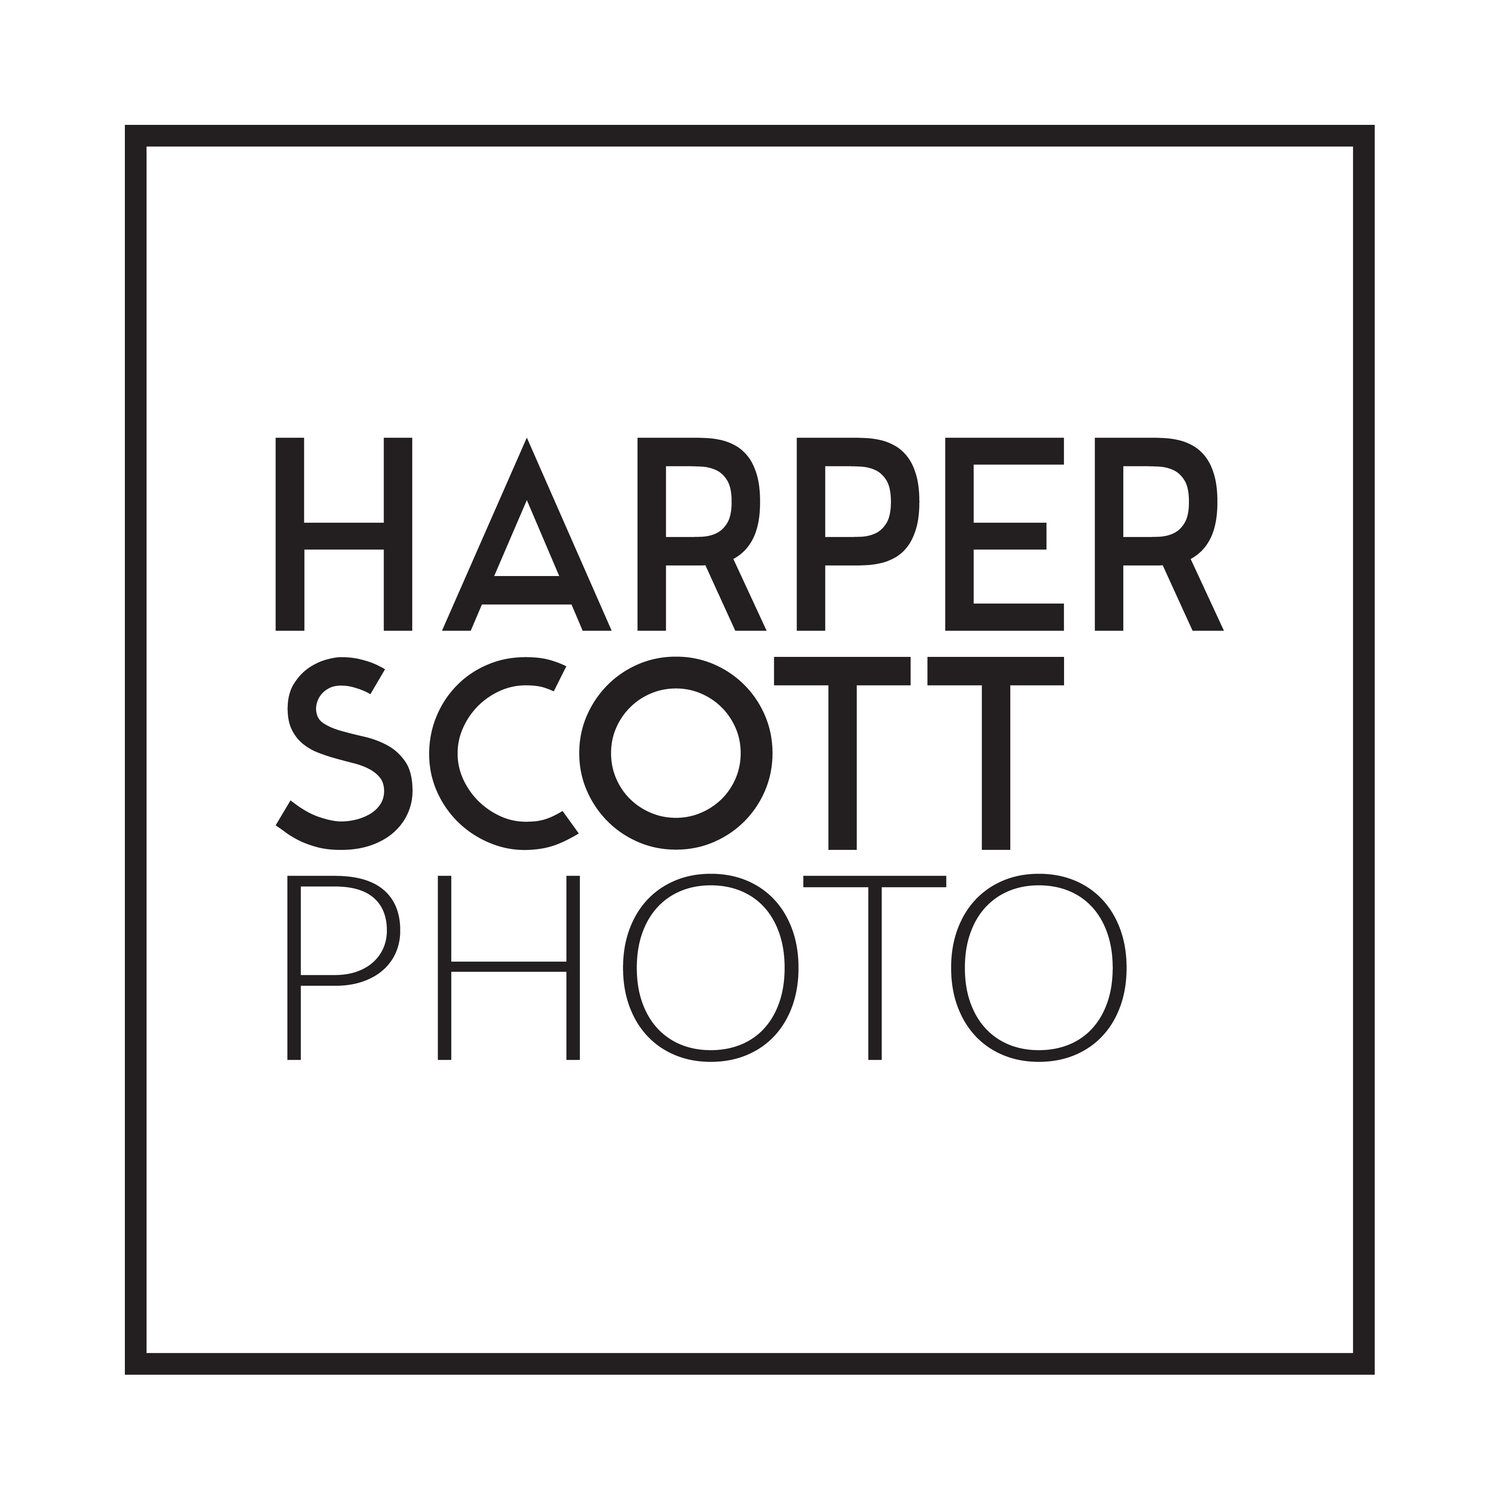 Harper Scott Photo